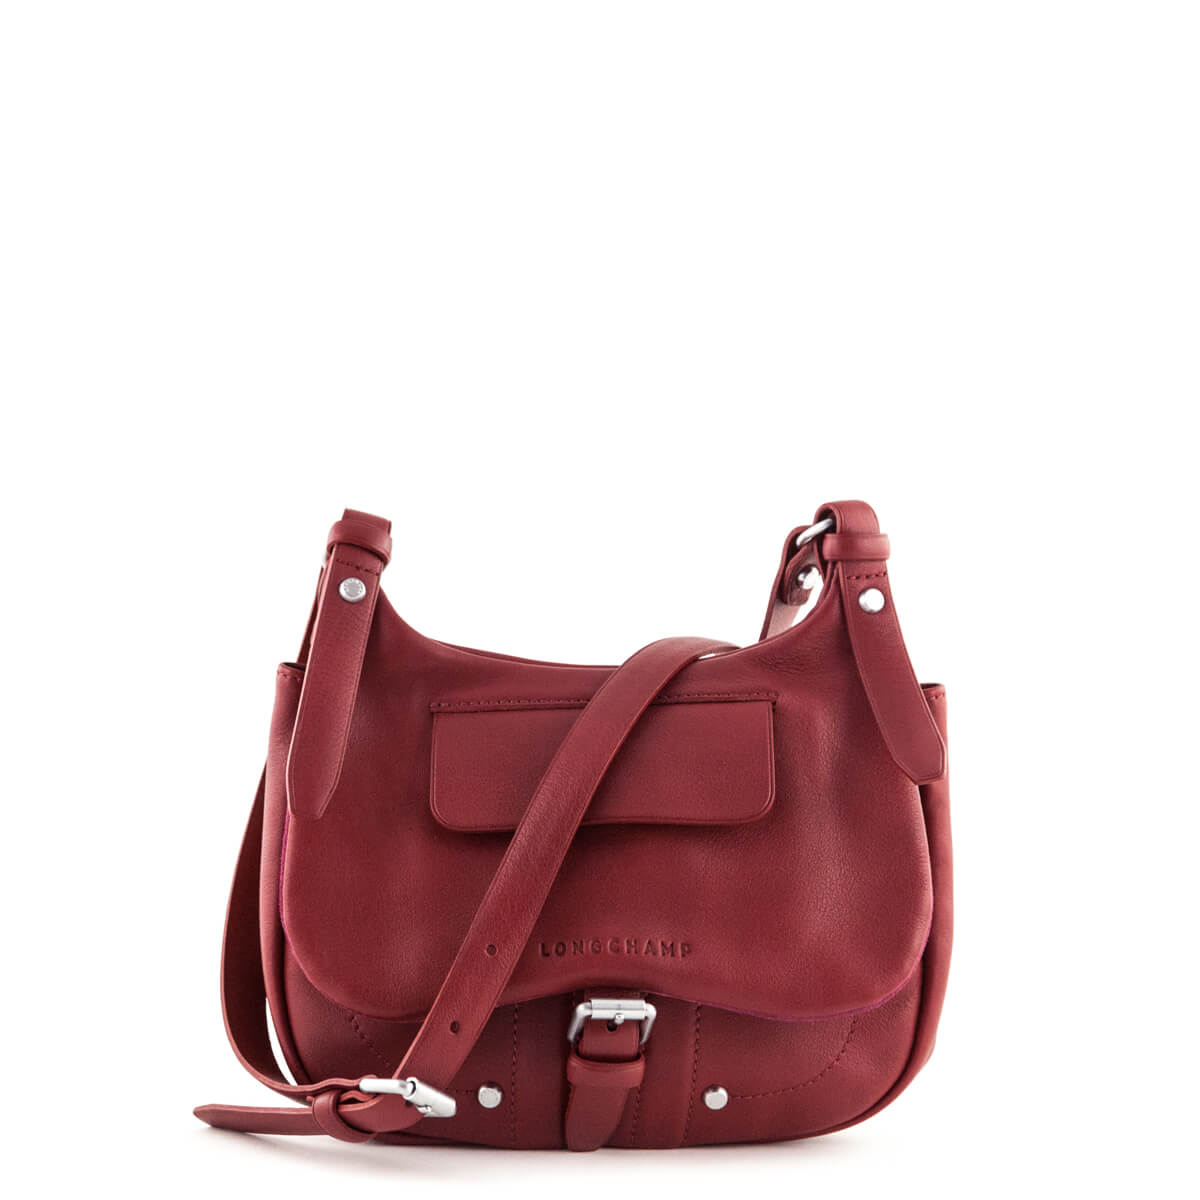 c955377eabff Longchamp Carmine Leather Small Balzane Crossbody Bag - LOVE that BAG -  Preowned Authentic Designer Handbags ...